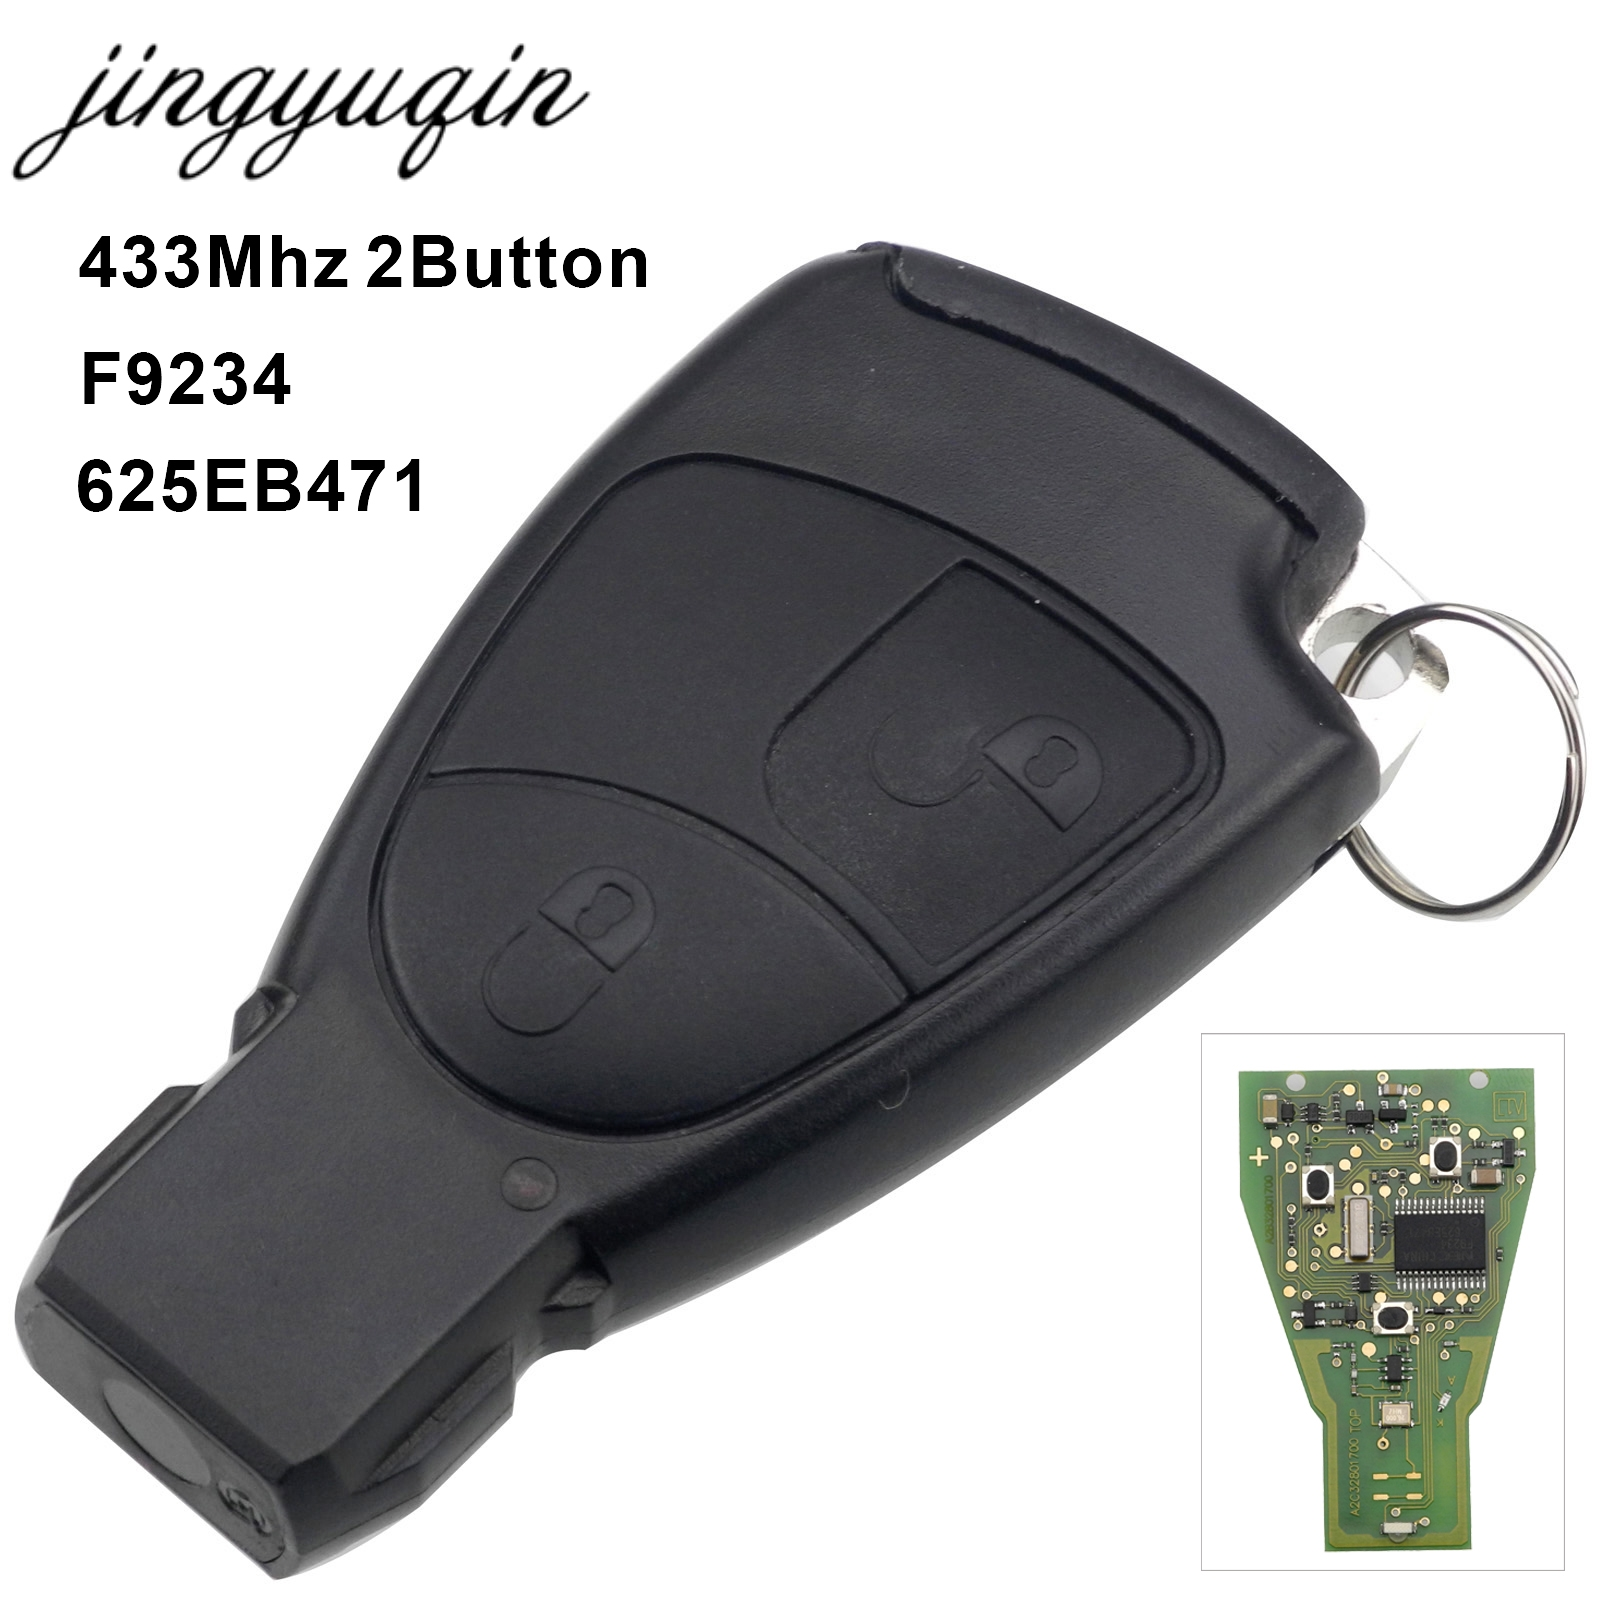 jingyuqin 433Mhz 2 Button Smart Remote Car Key Fob For Mercedes for Benz C E ML Class Sprinter Control Circuit Board Keyless цена